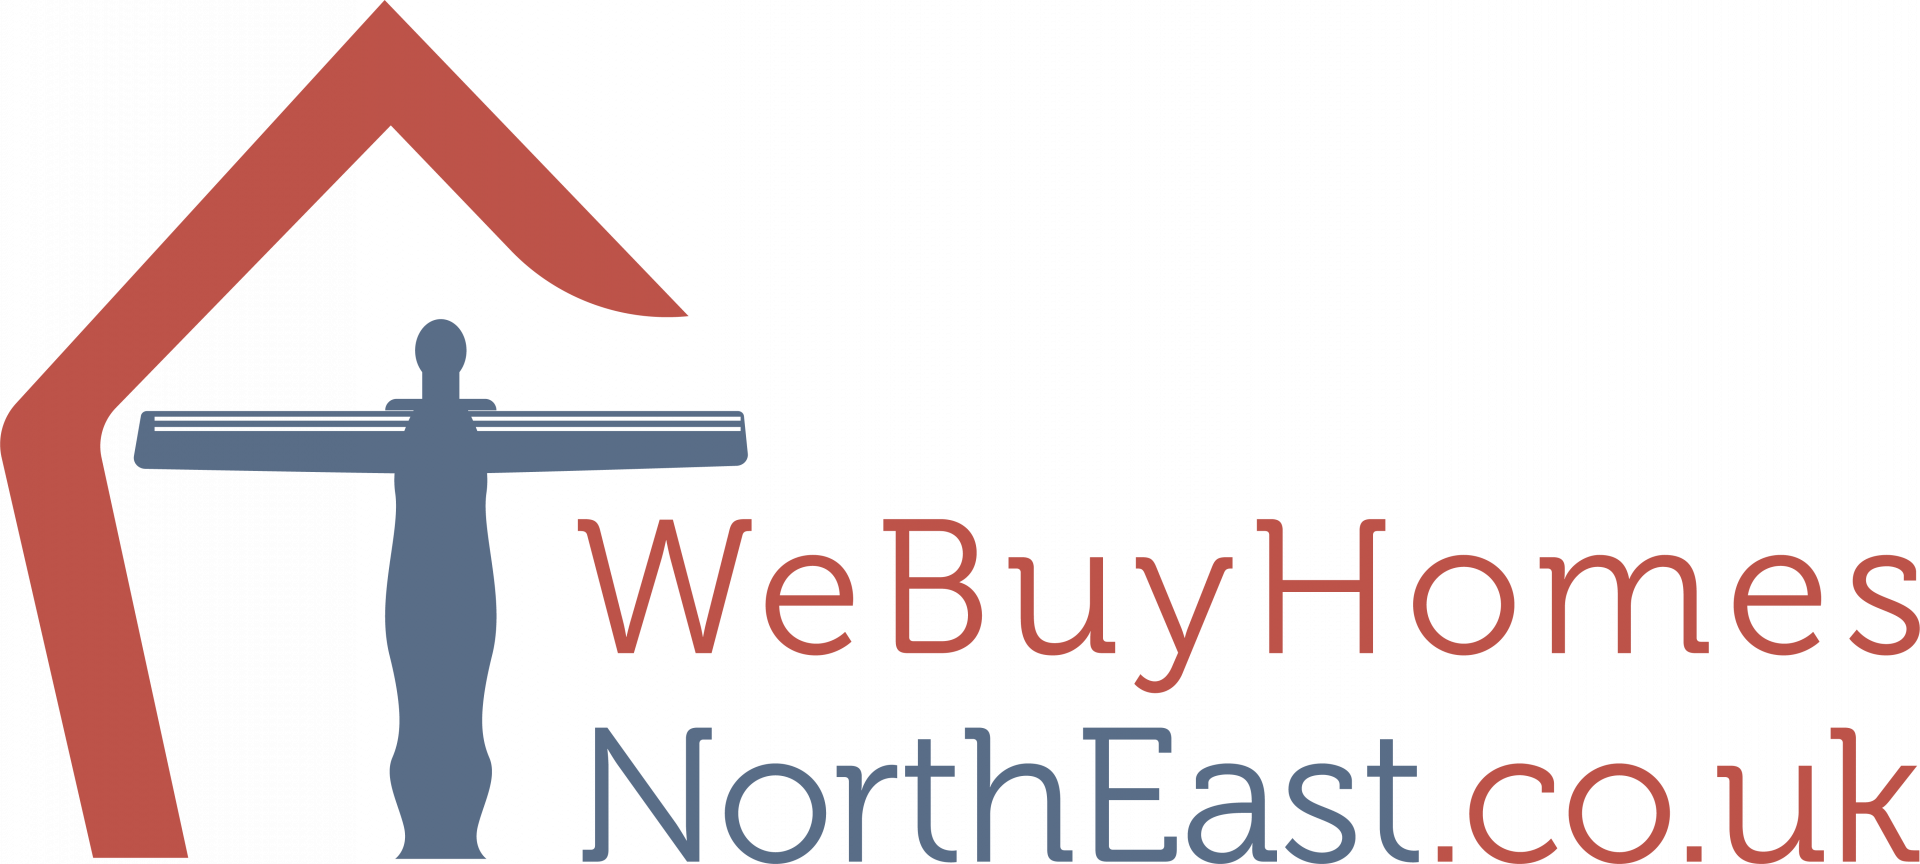 We Buy Homes North East  logo